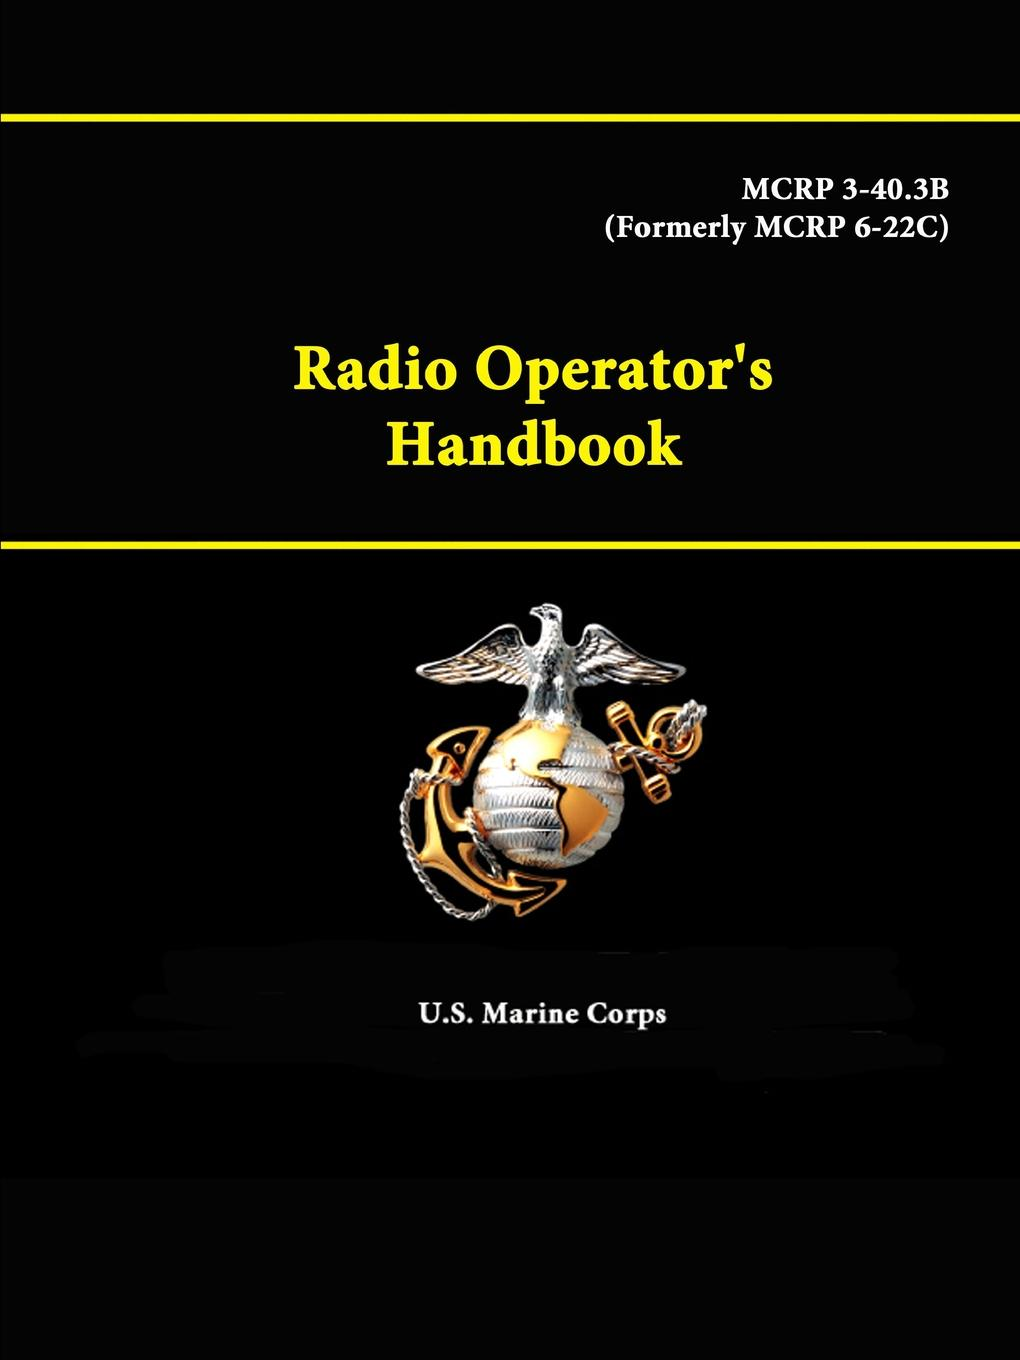 U.S. Marine Corps Radio Operator.s Handbook - MCRP 3-40.3B (Formerly MCRP 6-22C) thor fossen i handbook of marine craft hydrodynamics and motion control